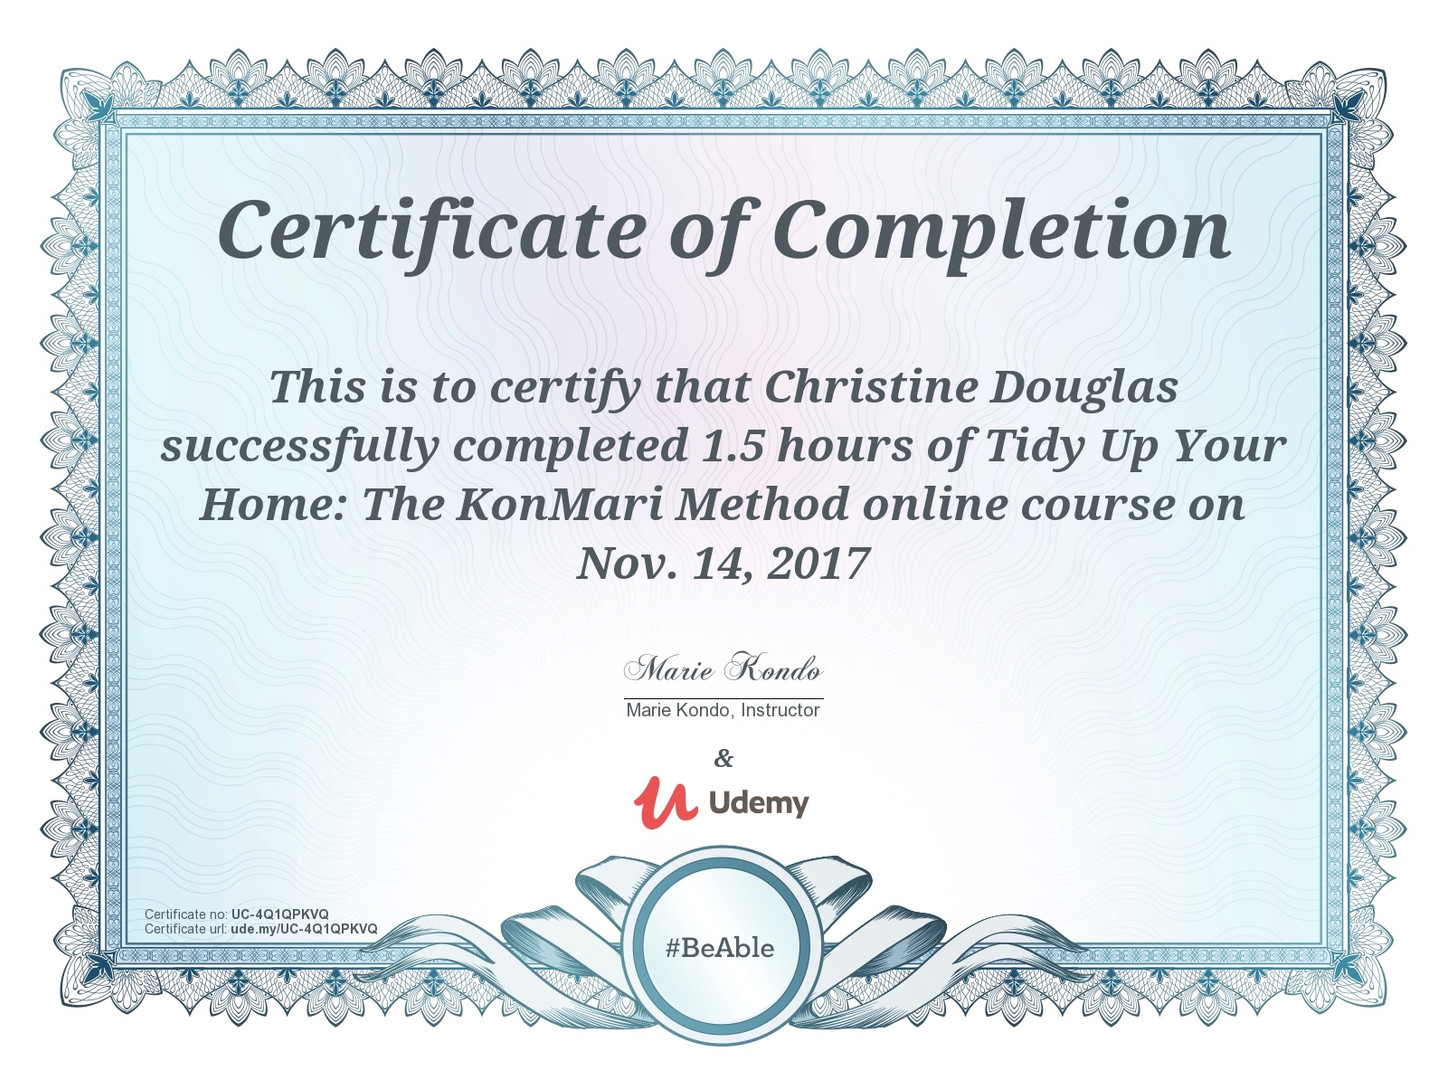 Marie Kondo's KonMari Method Online Course Certification of Completion